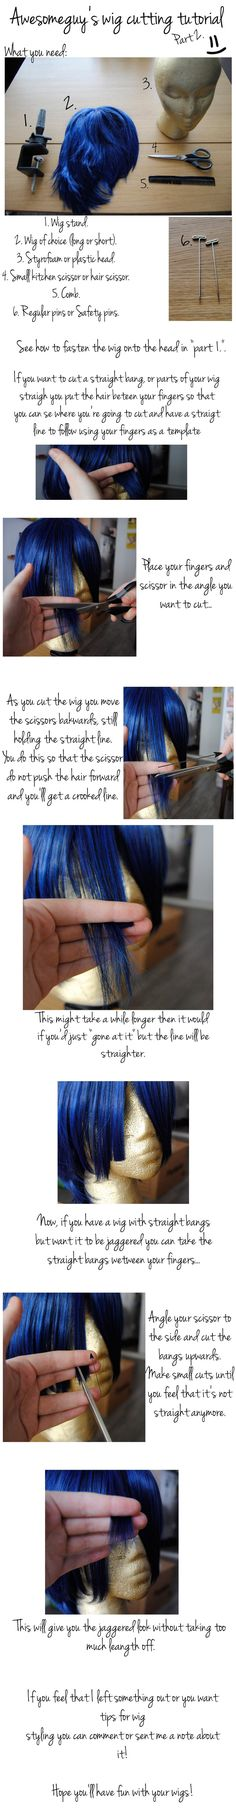 Awesomeguy's Wig Cutting Tutorial Part 2 by ~shisukoisa on deviantART